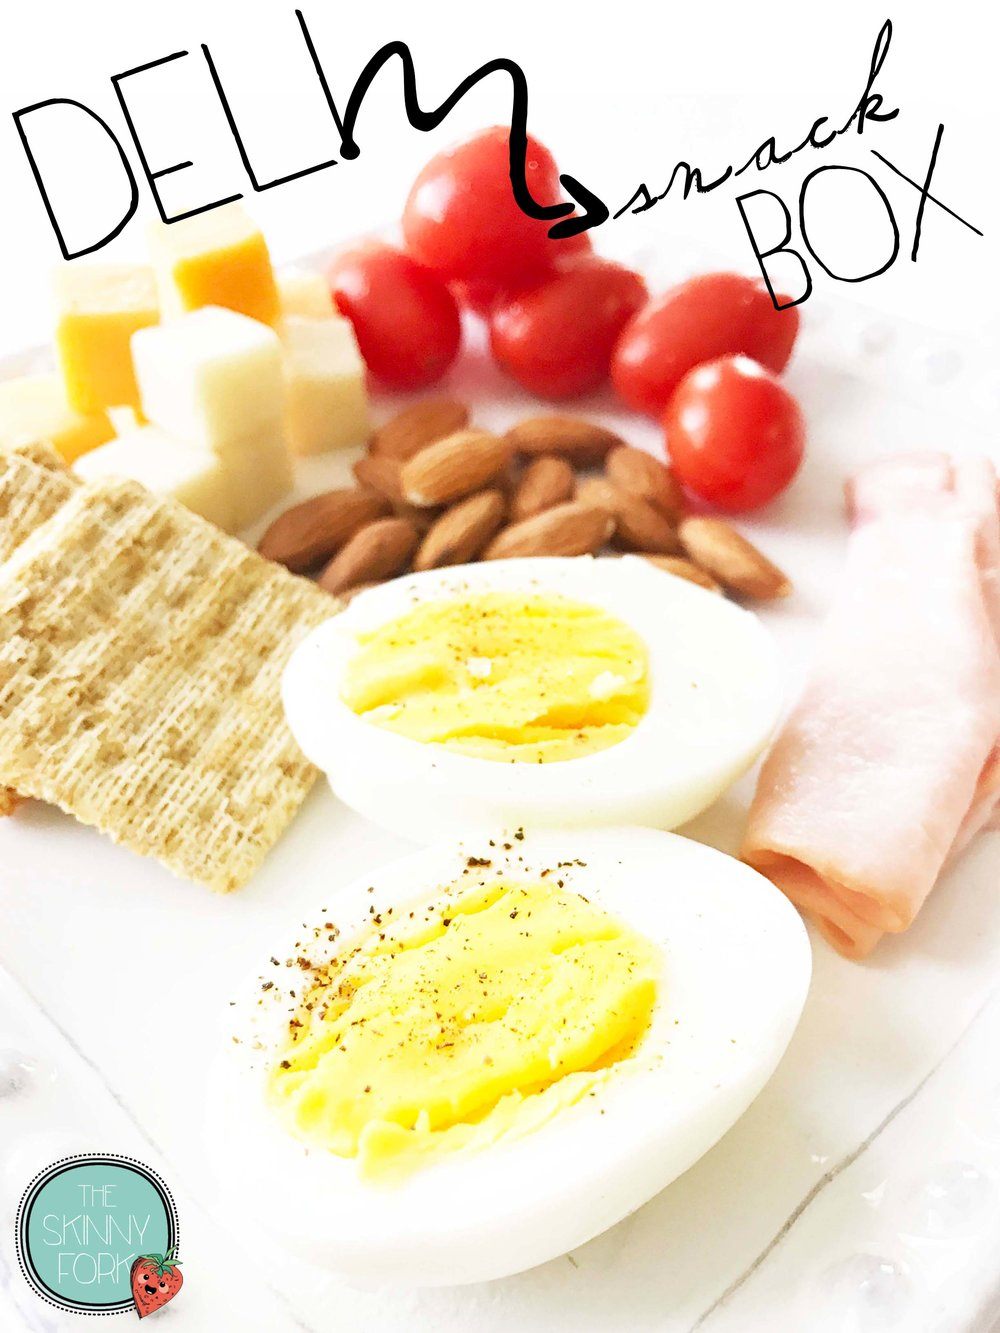 deli-snack-box-pin.jpg